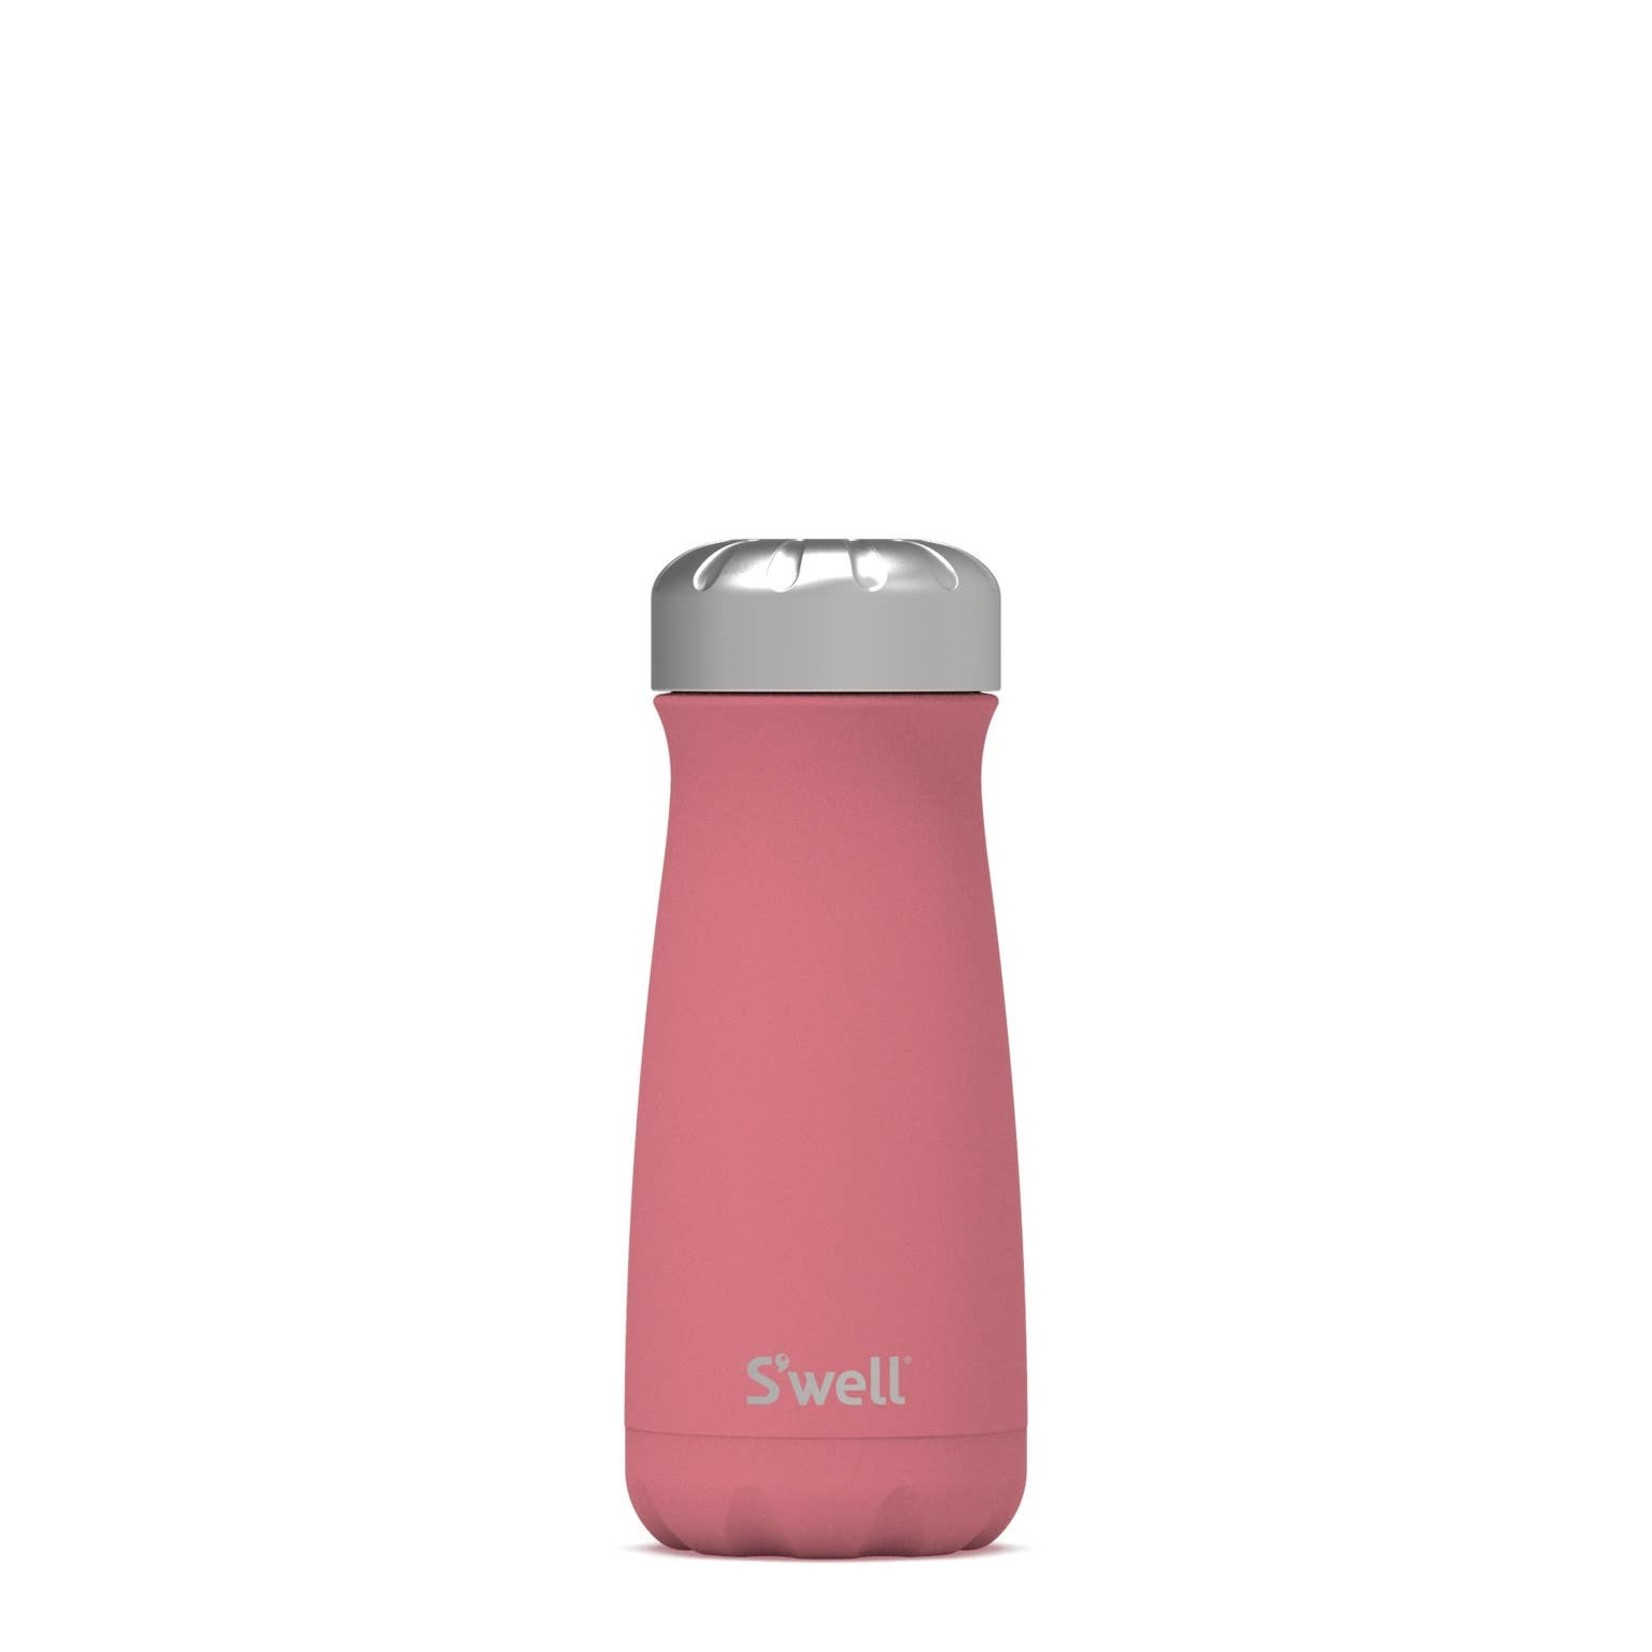 S'well S'well Bottle Traveler 16oz Stone Coral Reef